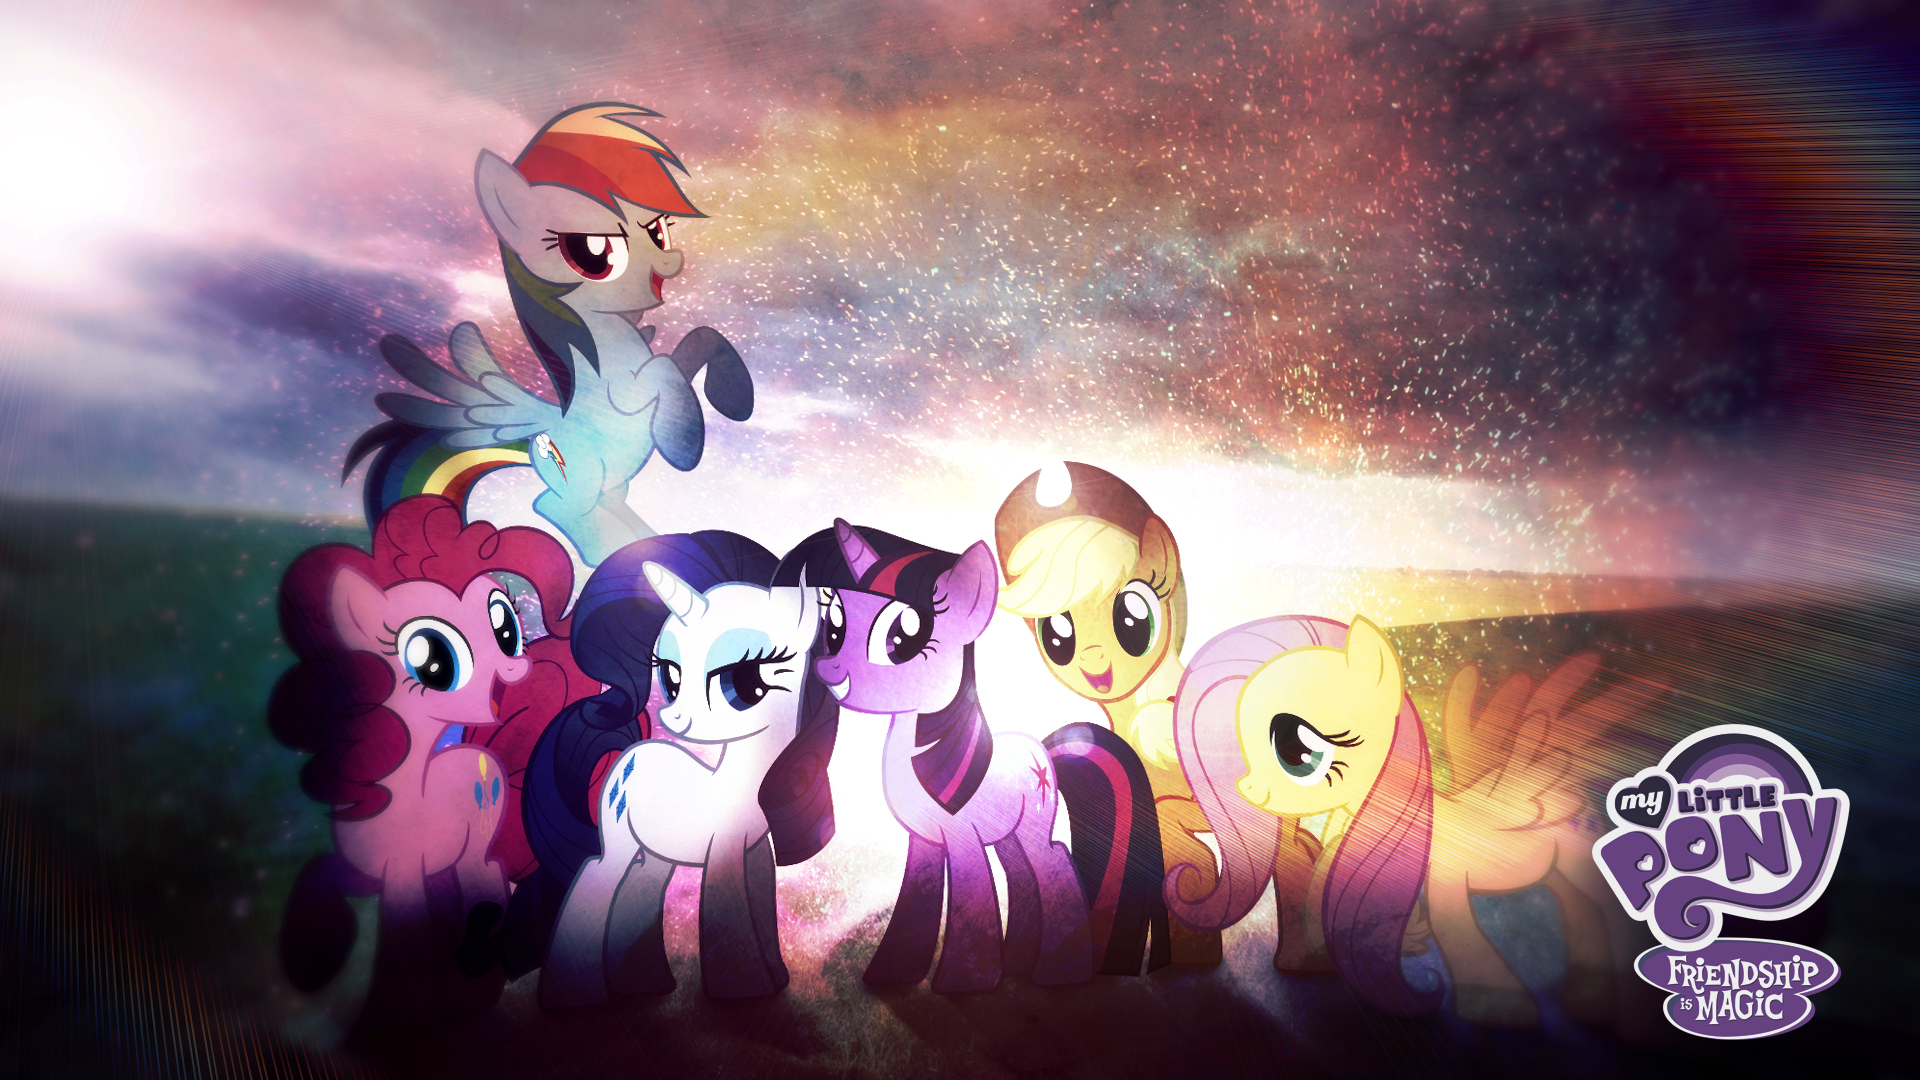 My Little Pony Friendship Is Magic Wallpaper Hd By Jackardy On